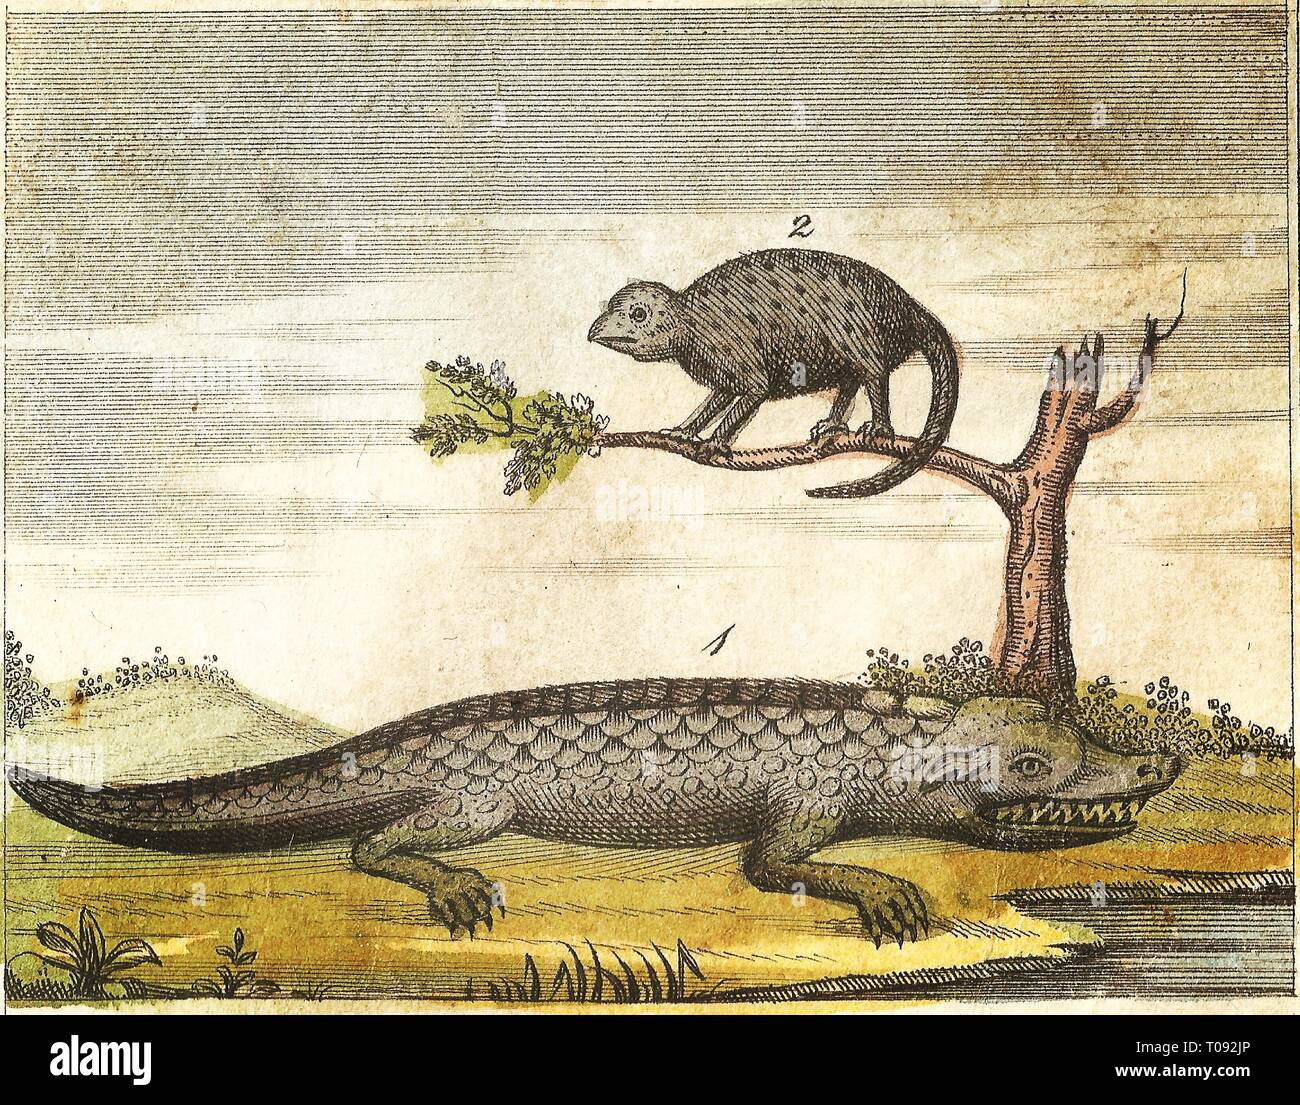 Crocodile and chameleon vintage engraved illustration with imperfections patina and original colors buffons natural history 1840